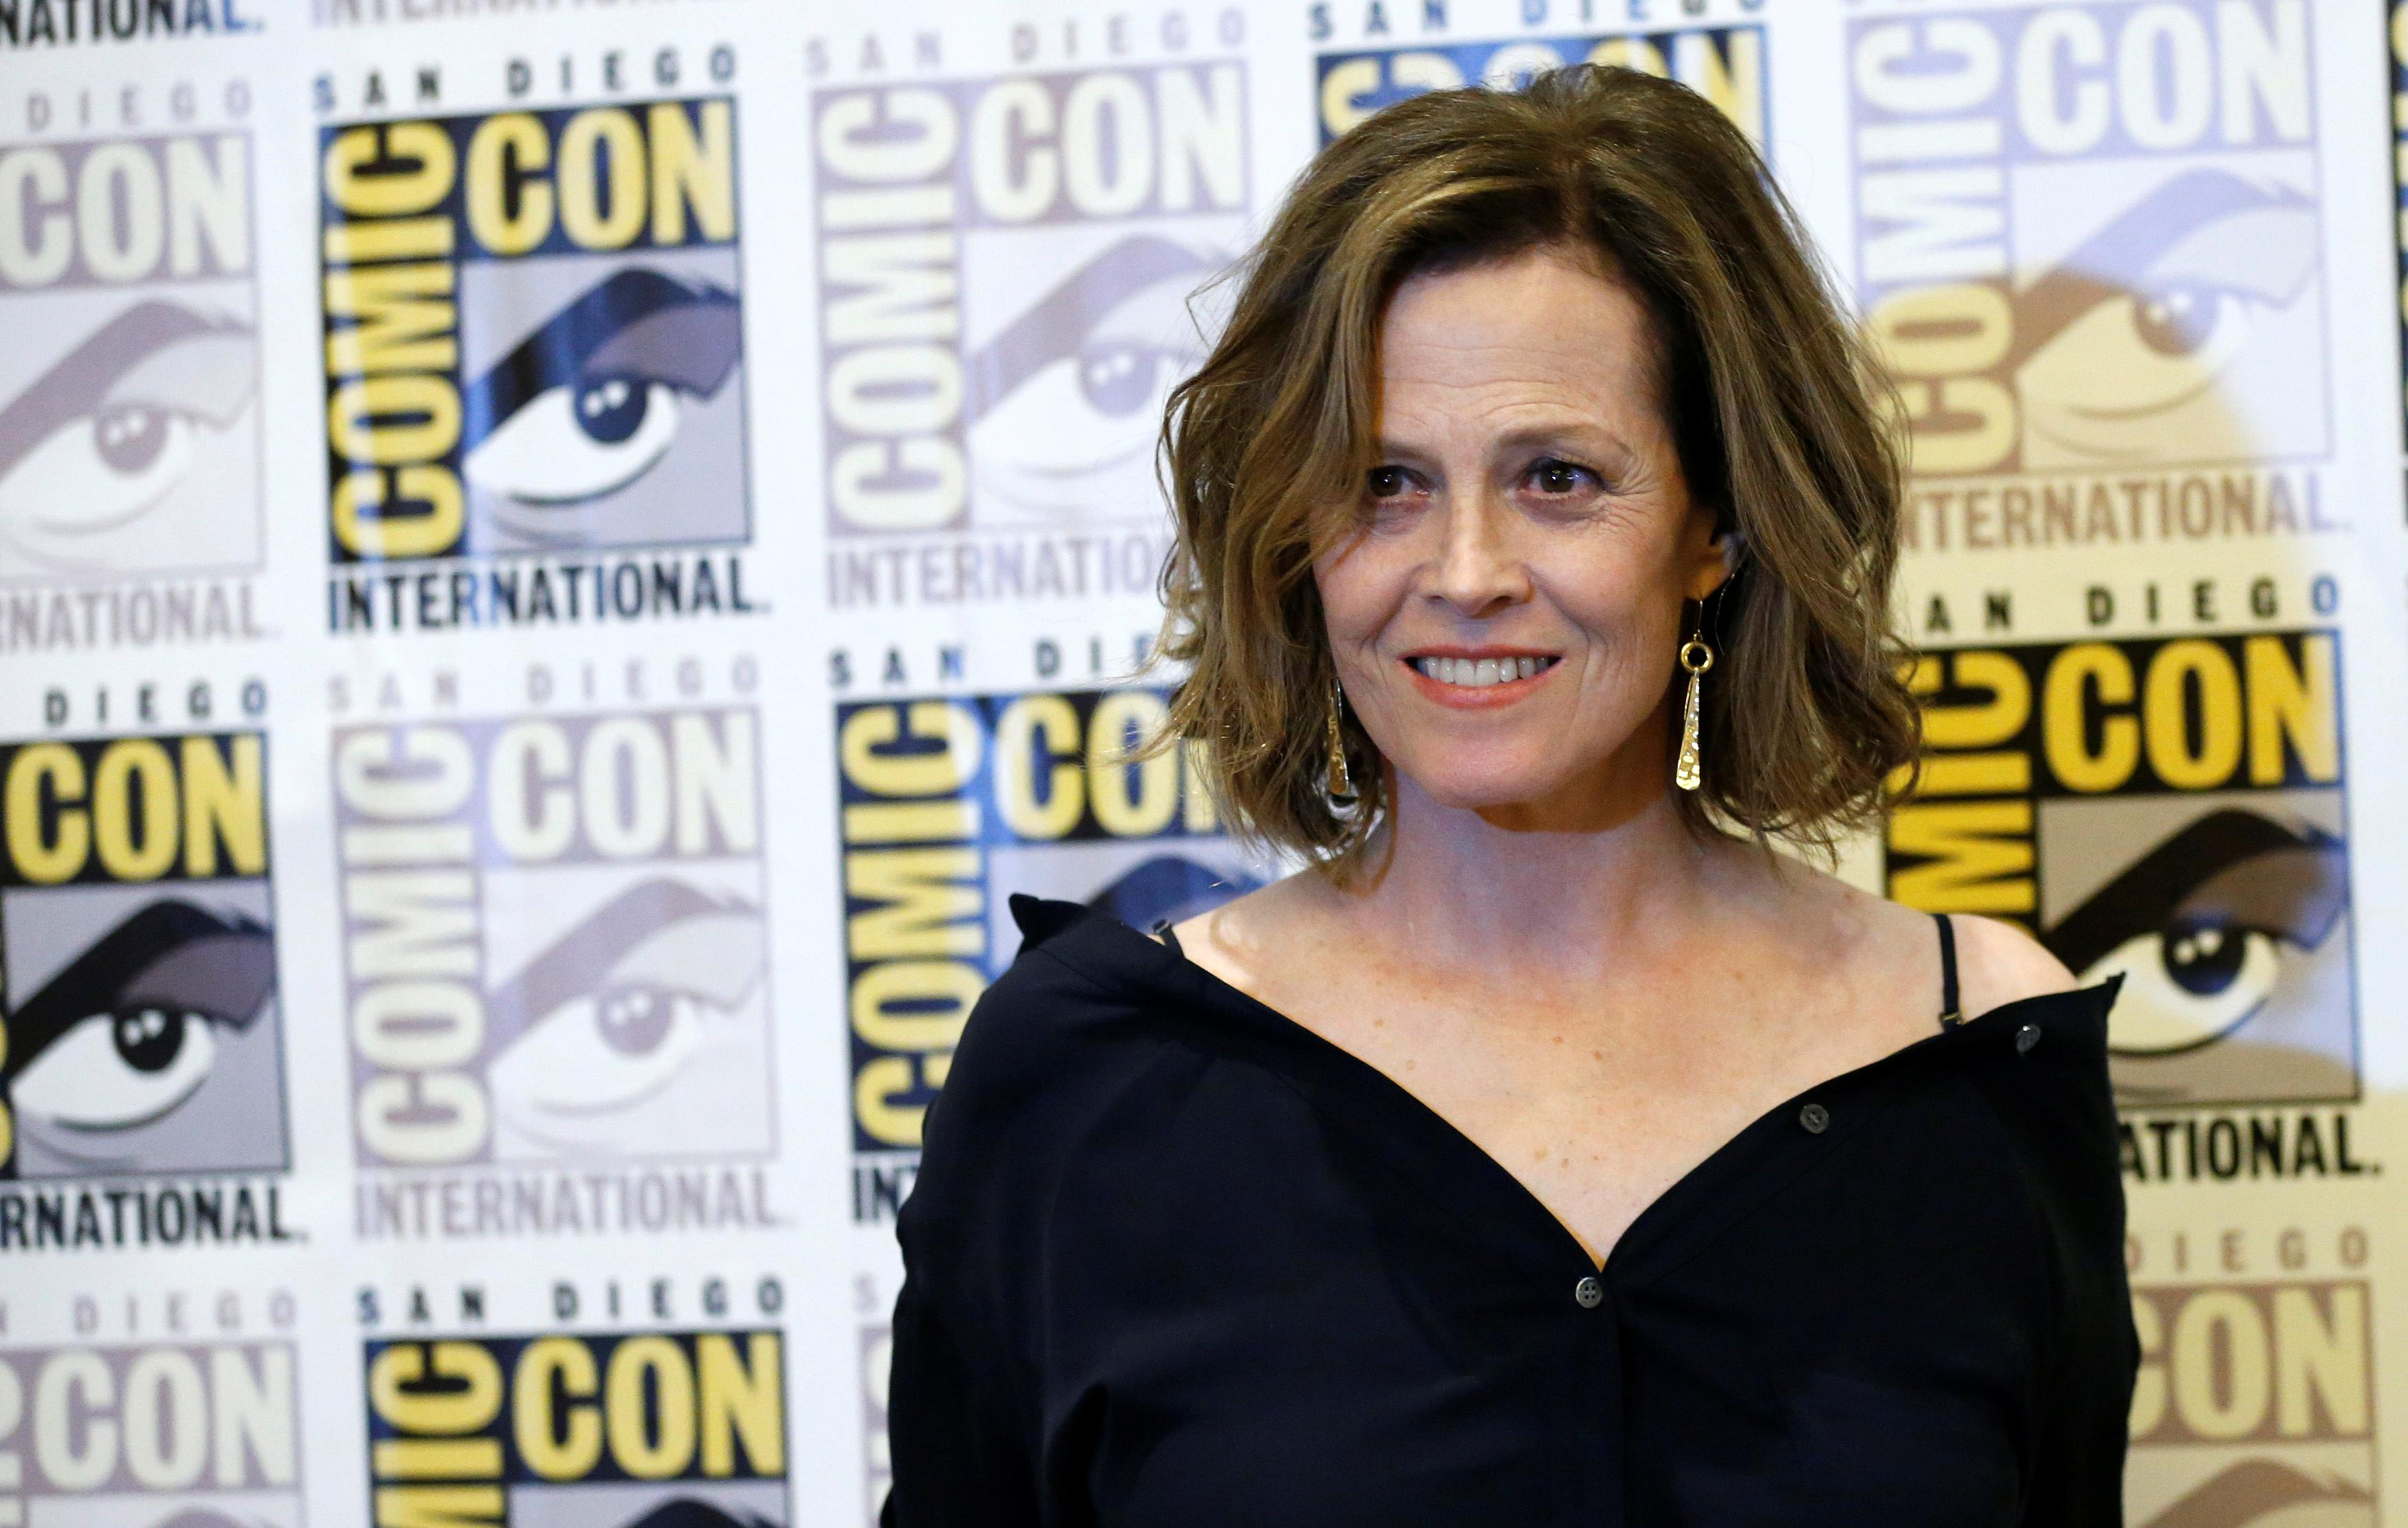 Sigourney Weaver marks 'Alien' anniversary: 'I thought it was a